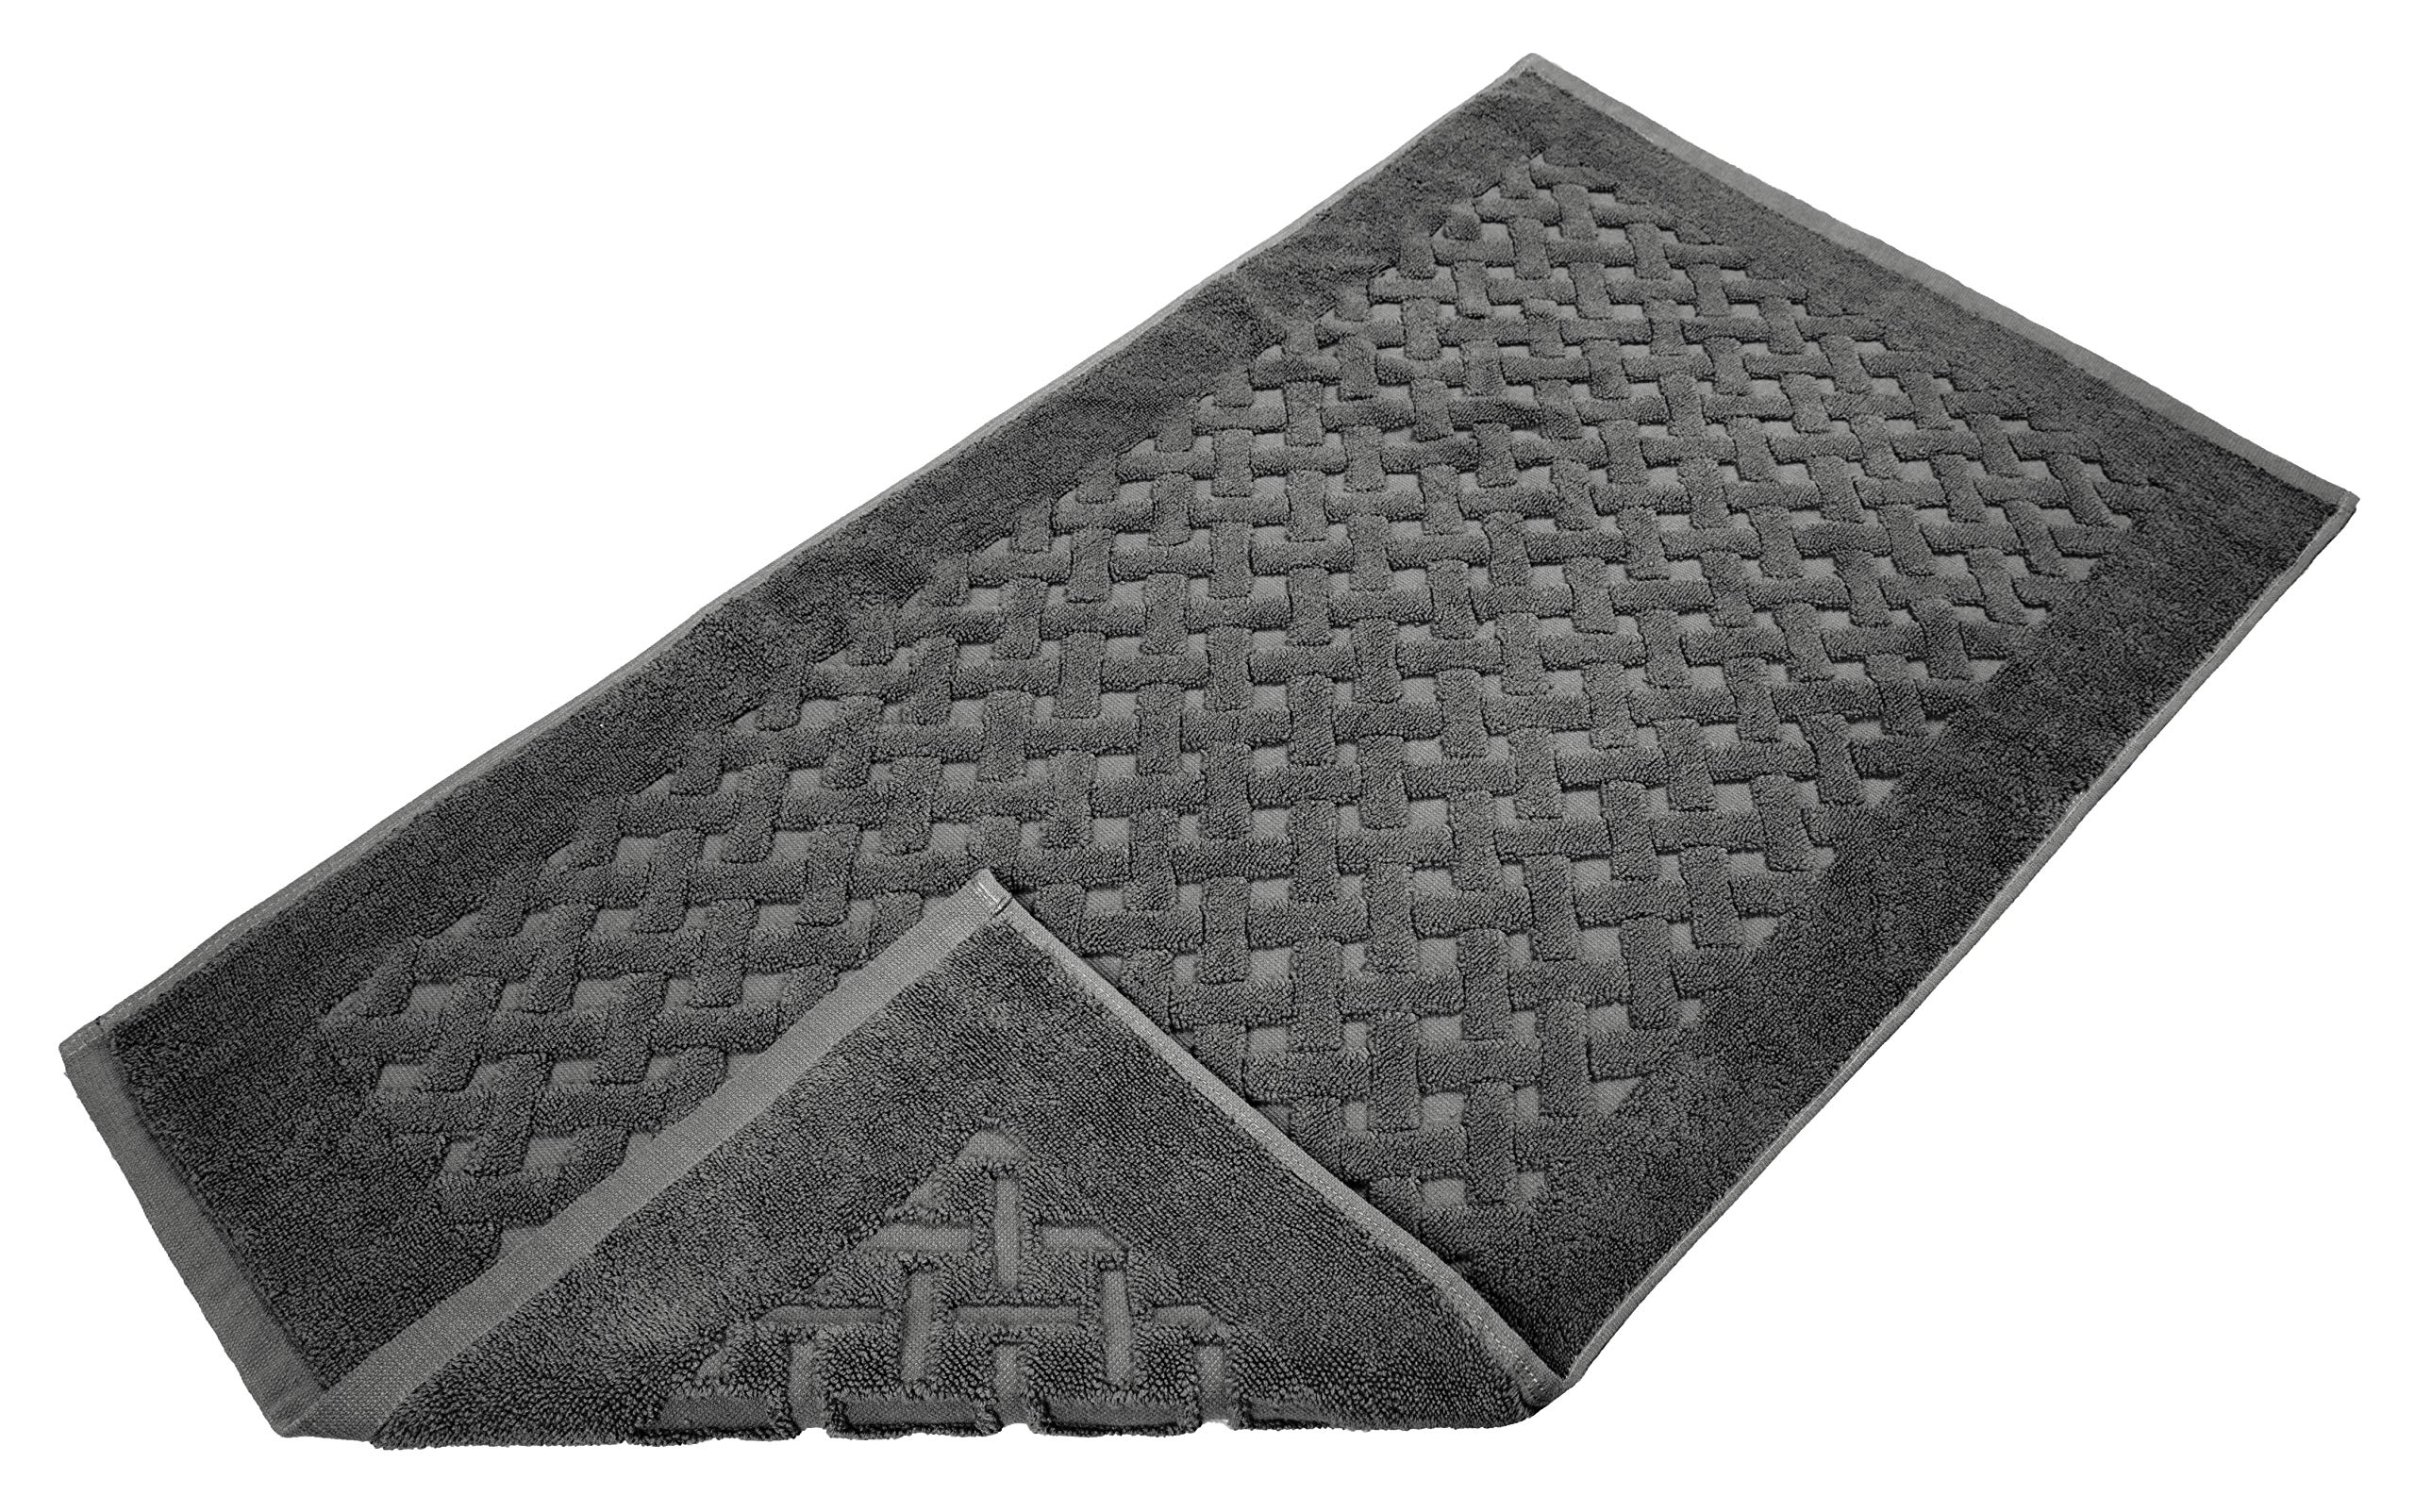 Protech Machine Washable 2-Pack Bath Mats, 100% Ring Spun Genuine Cotton, 900 GSM, Hotel & Spa Quality, Maximum Absorbency & Softness, Perfect for Decorative Bathrooms, 21x34 Inches, Dark Grey